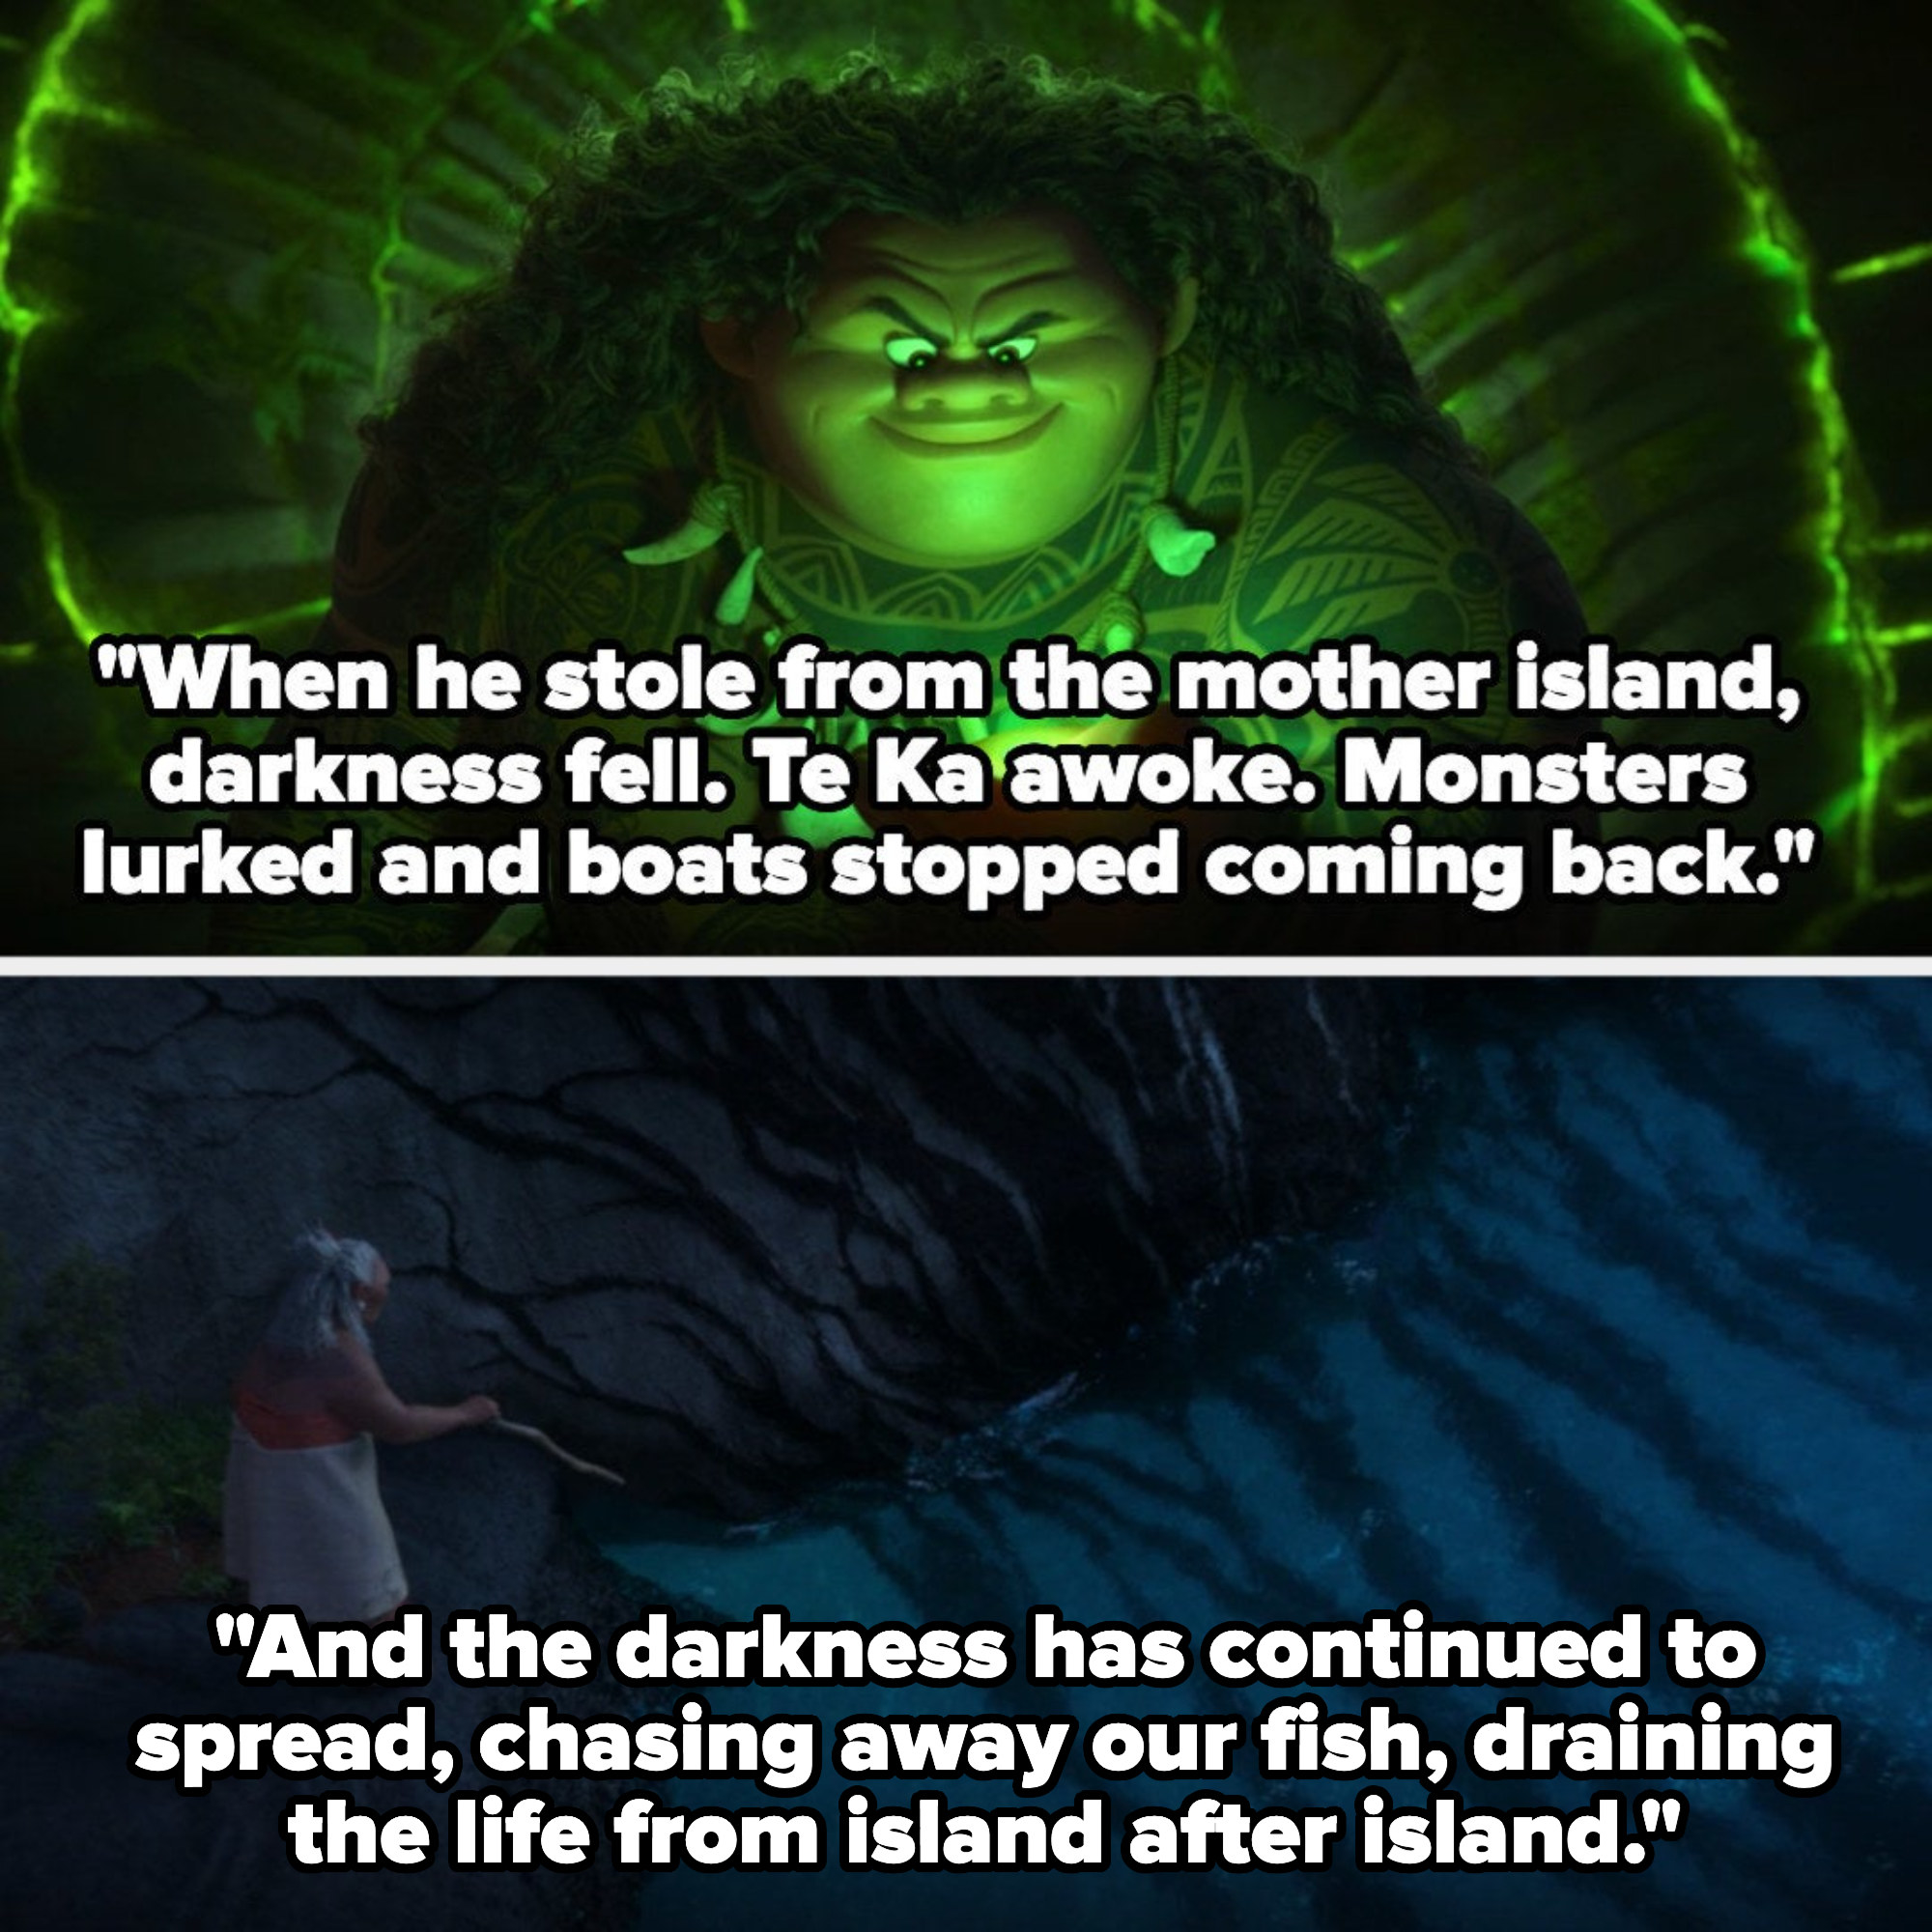 Tala telling Moana about darkness falling and spreading from island to island after Maui stole the heart